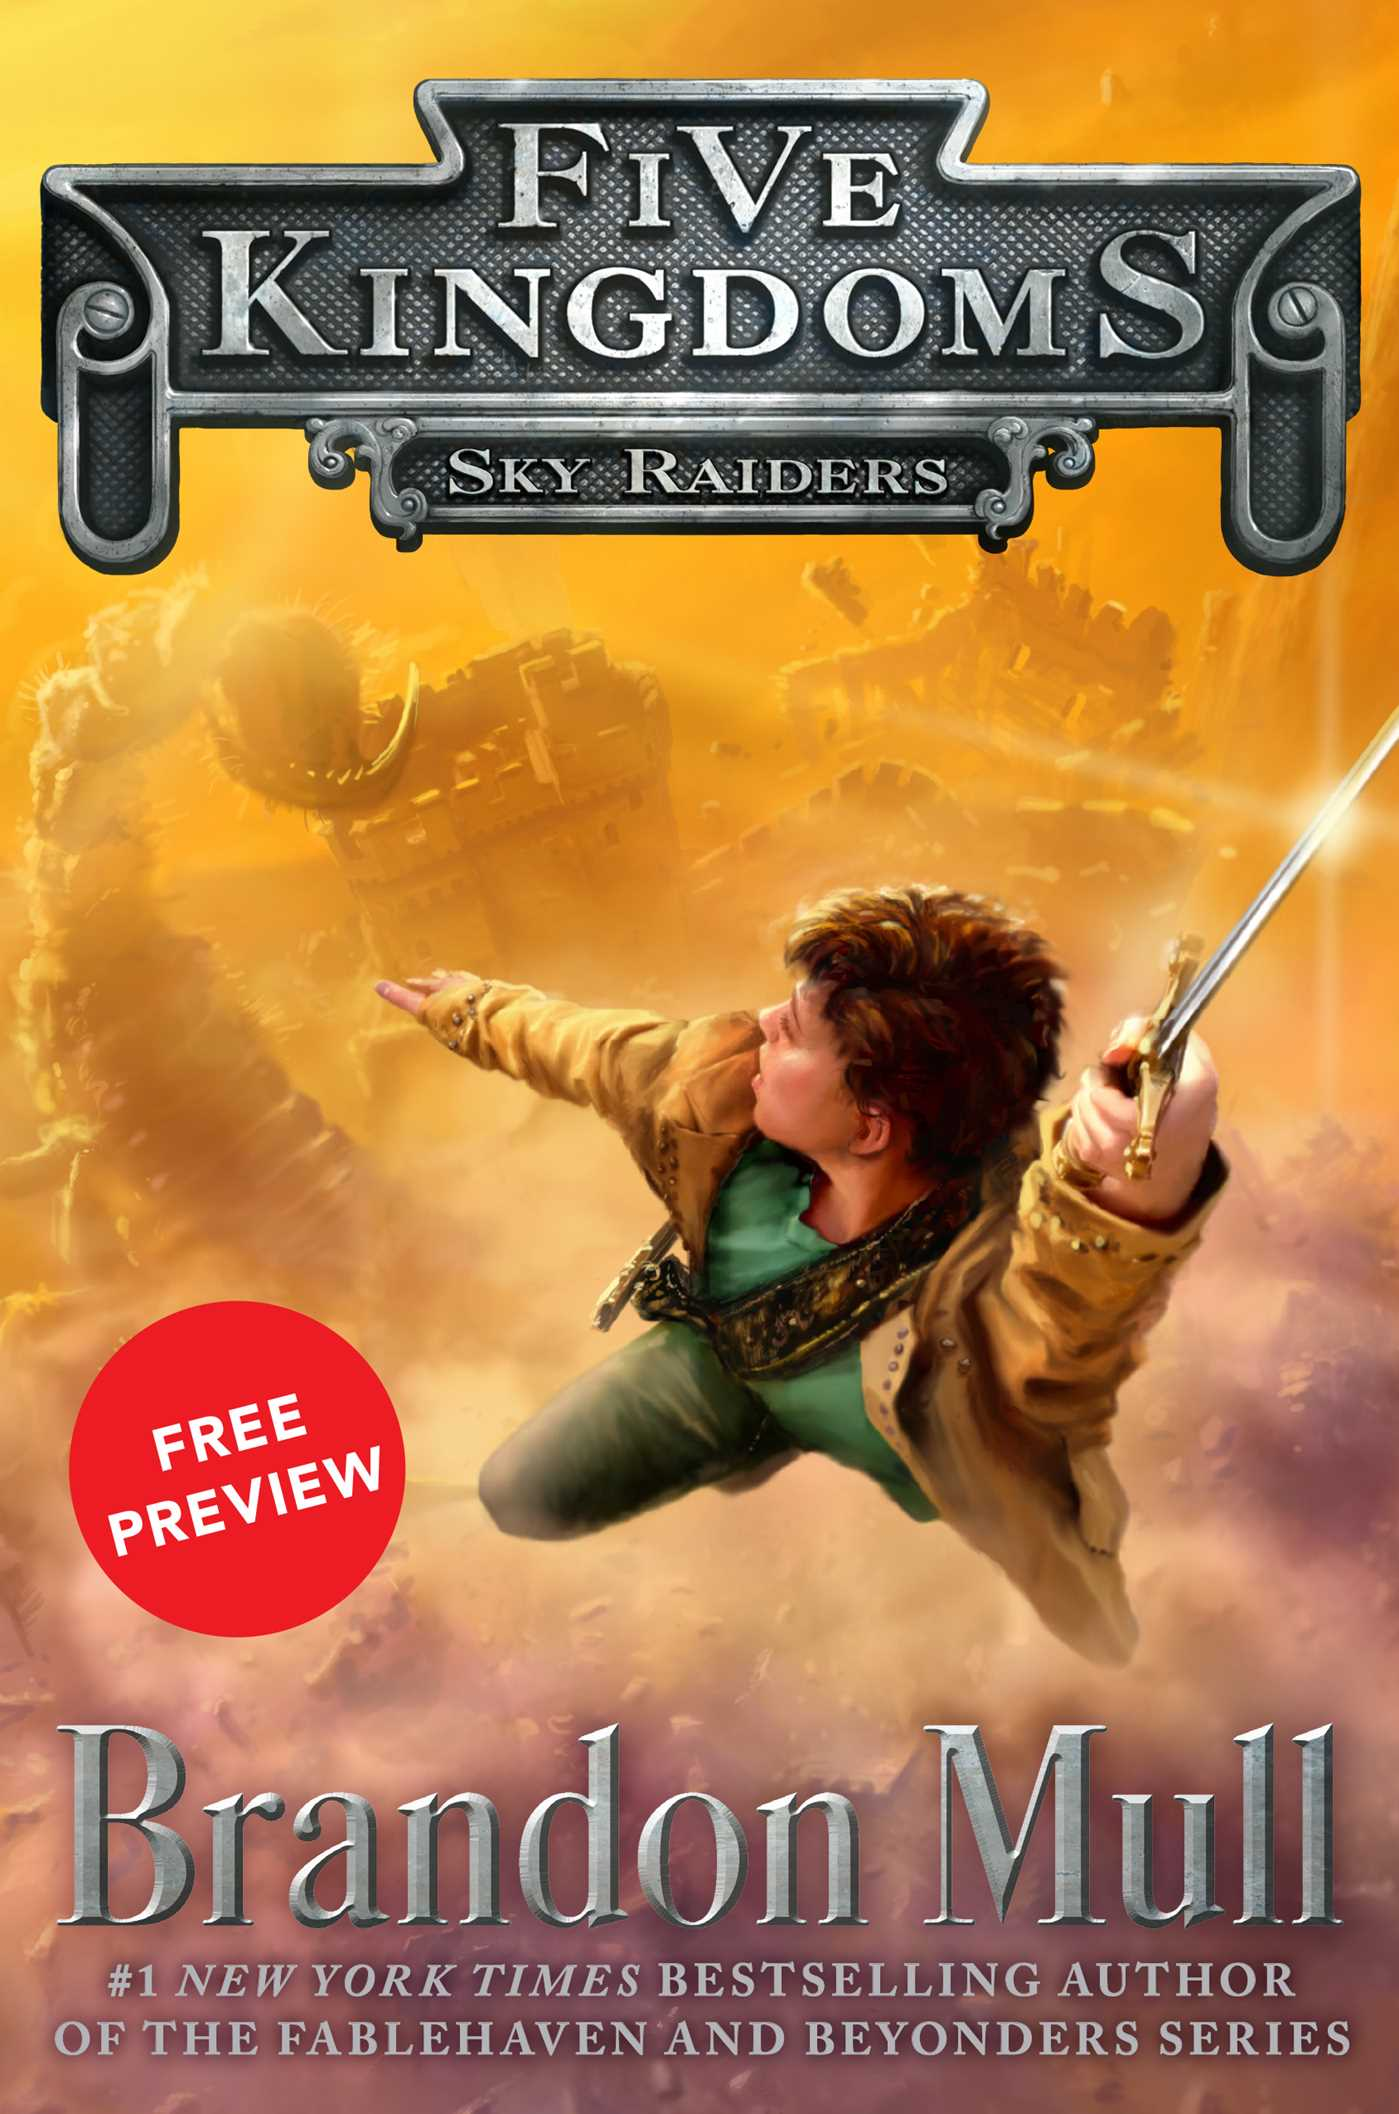 Sky raiders free preview edition 9781481425483 hr